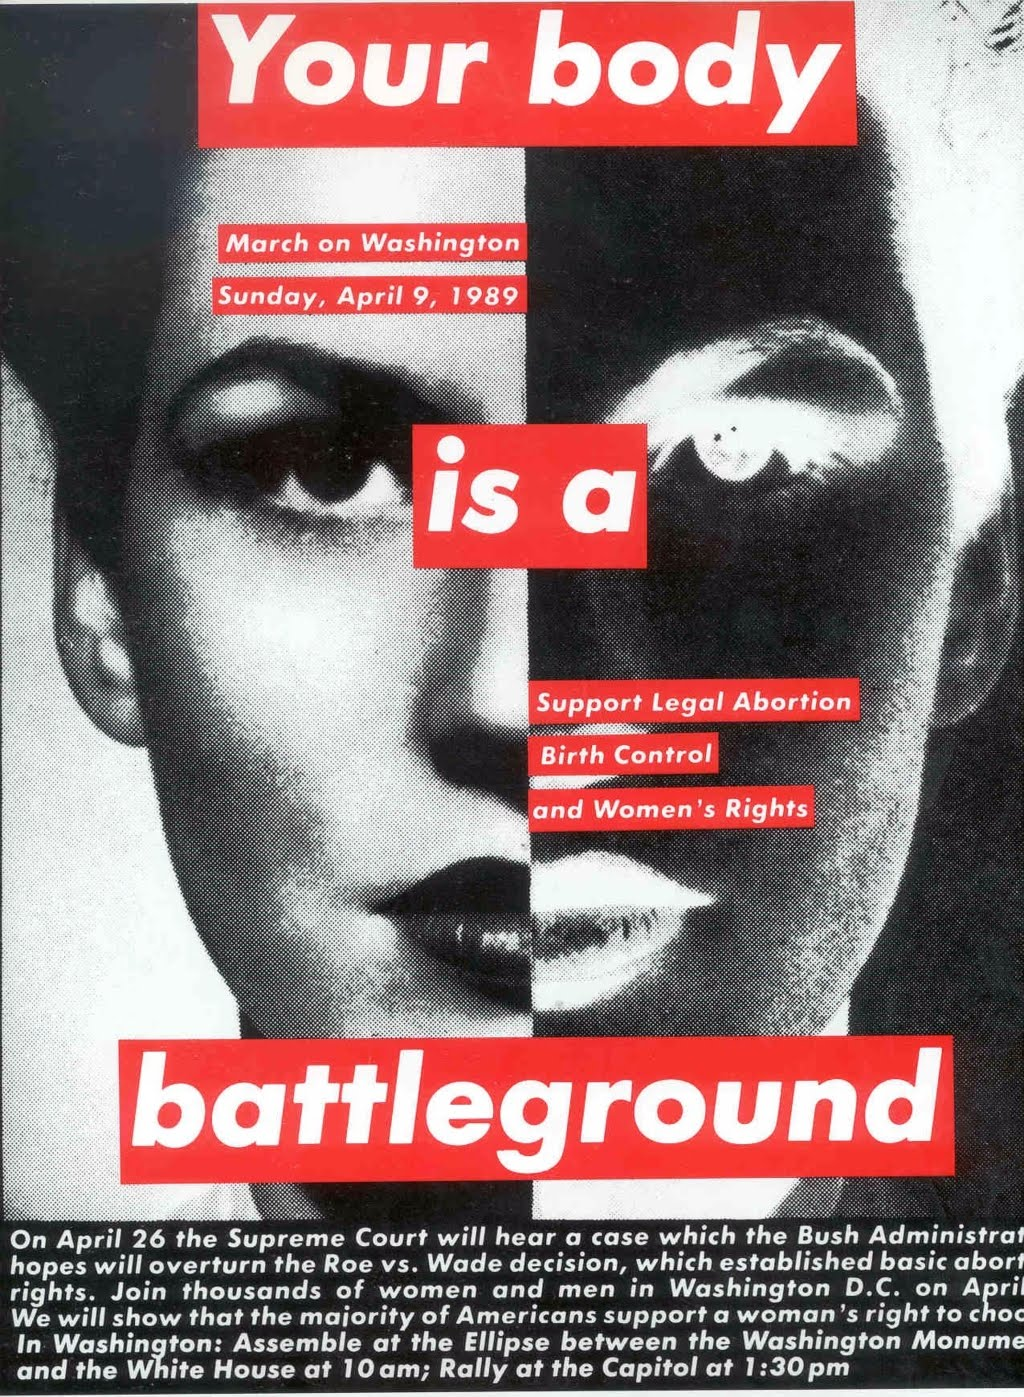 Battleground (The Corps #4) by W. E. B. Griffin